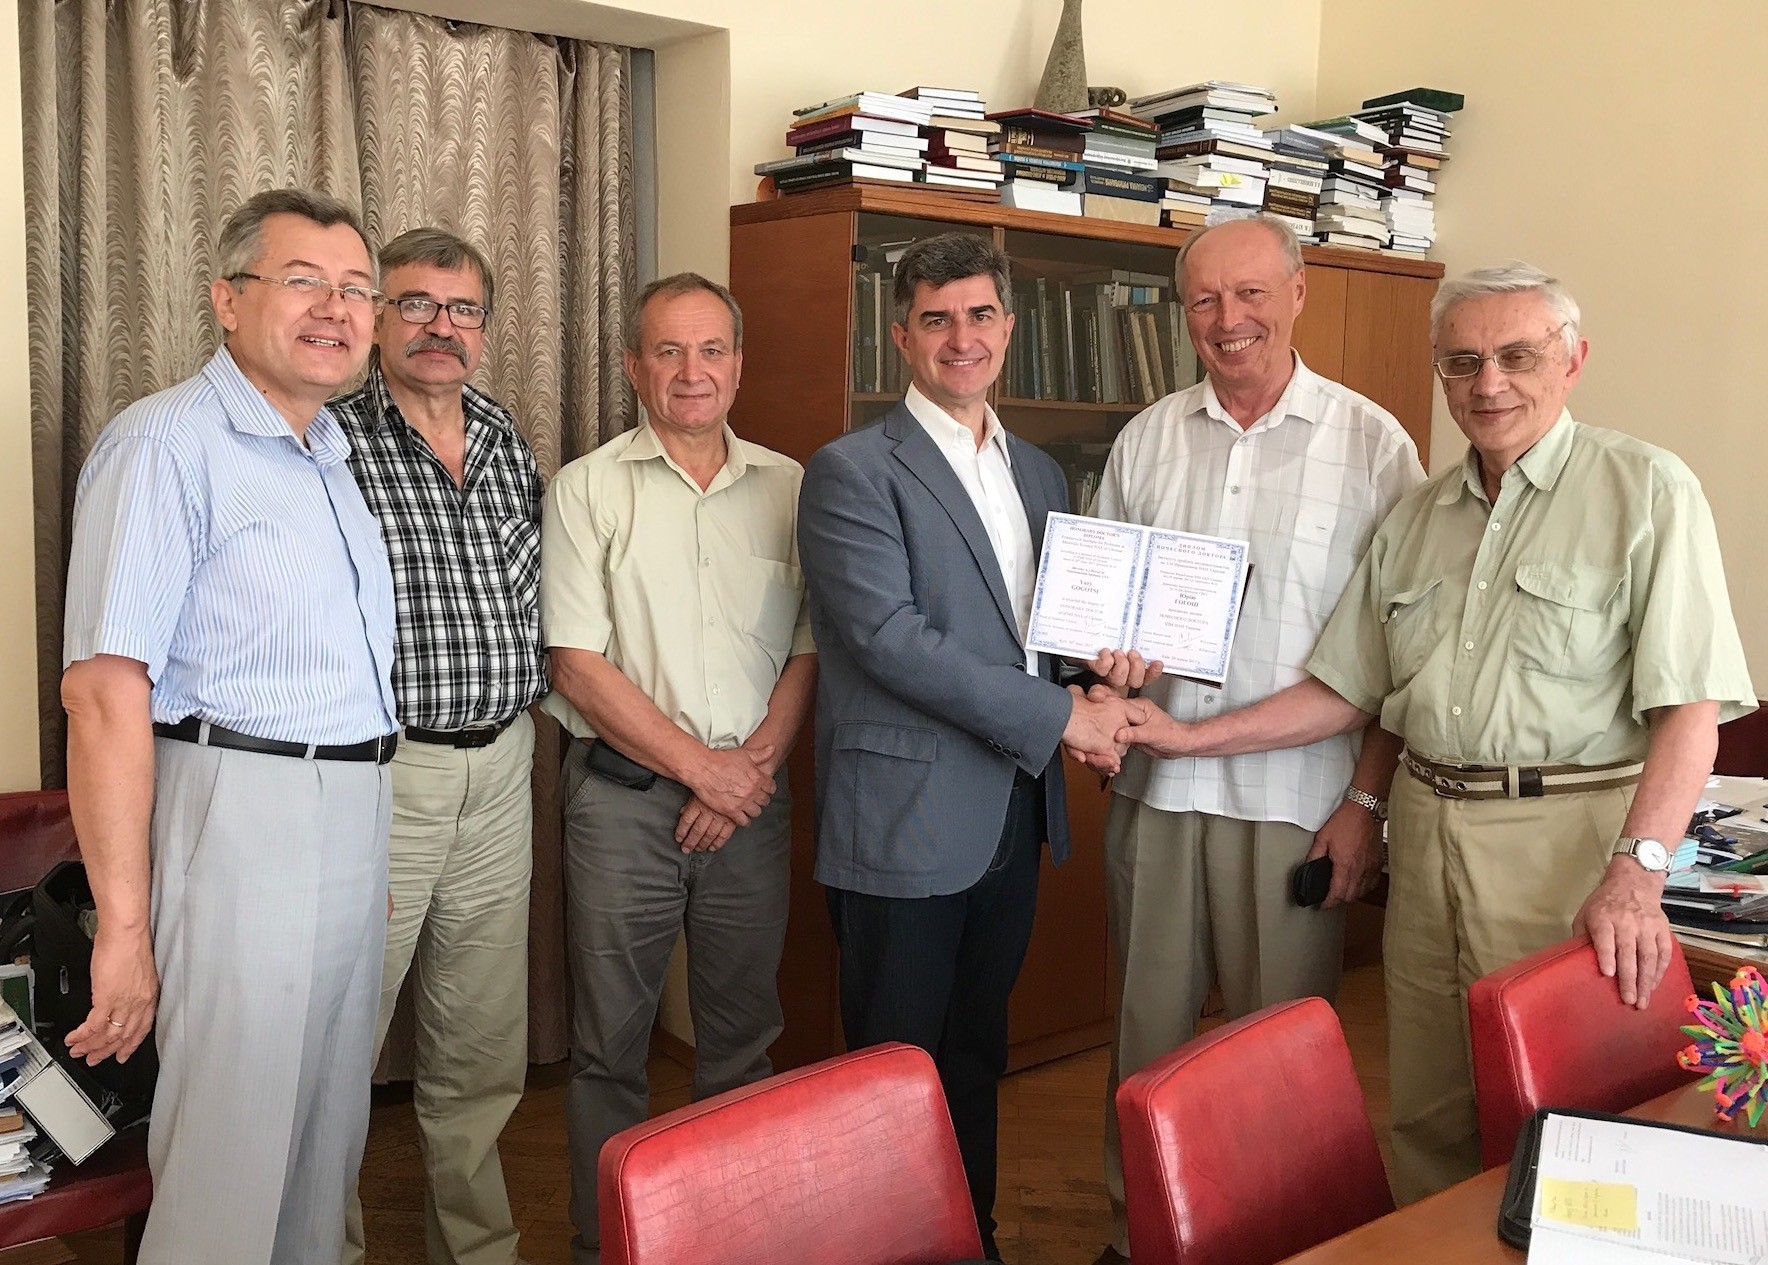 Deputy Directors of IPMS NAS professors Dr. Ragulya, Dr. Baglyuk, Mr. Zavorotnyi, Honorary Professor of IPMS NASU Yury Gogotsi,  Scientific Secretary Dr. Kartuzov and Dr. Firstov